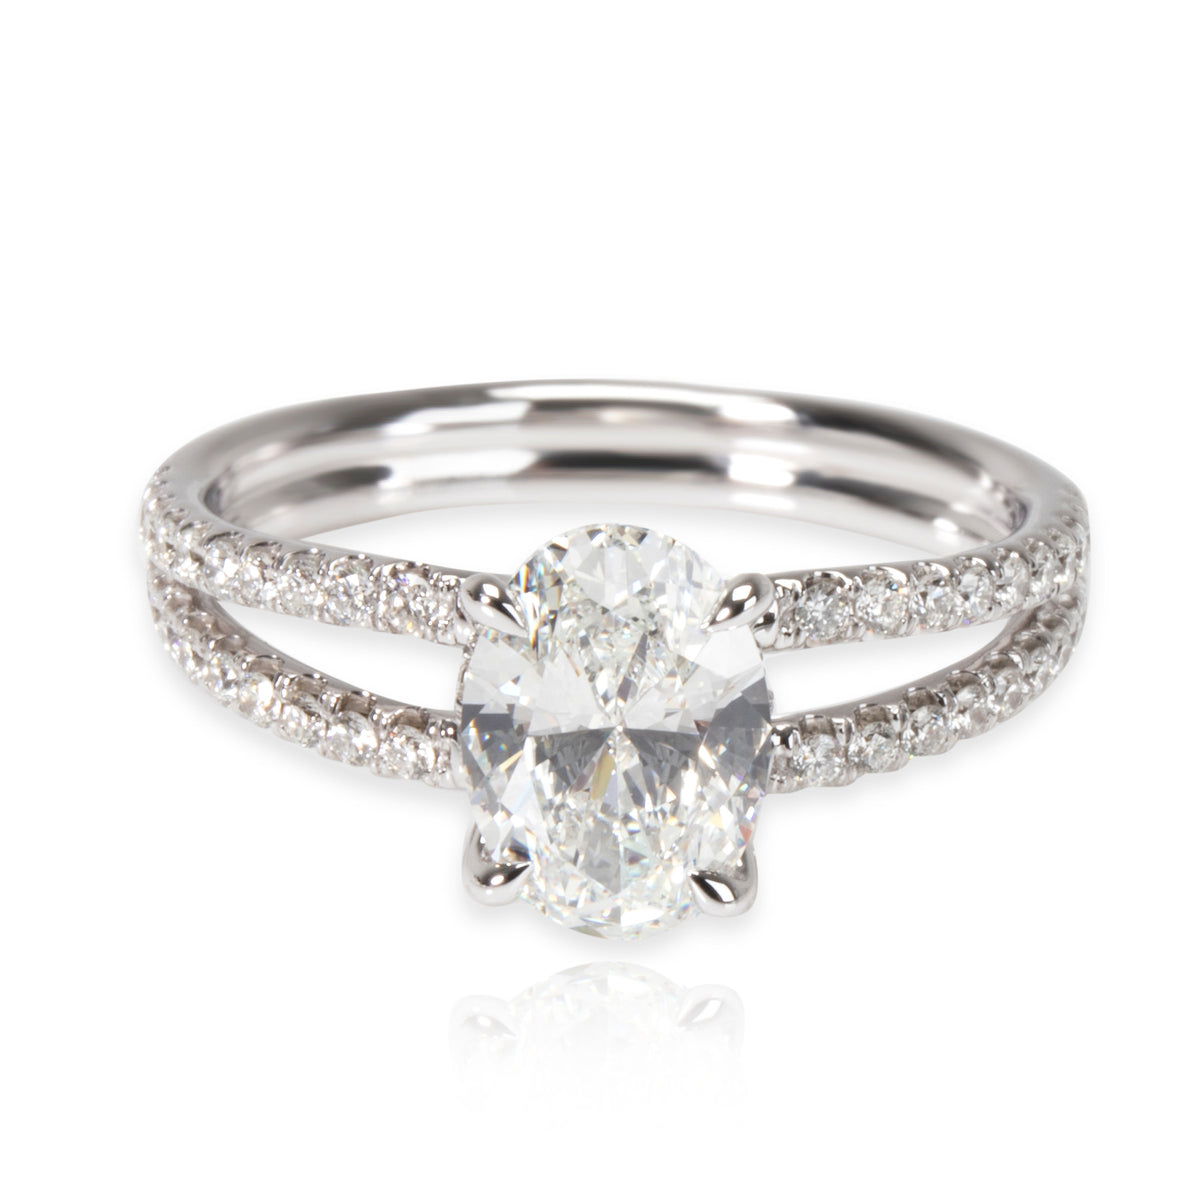 James Allen Oval Diamond Engagement Ring in 14K White Gold GIA H IF 1.34 CTW